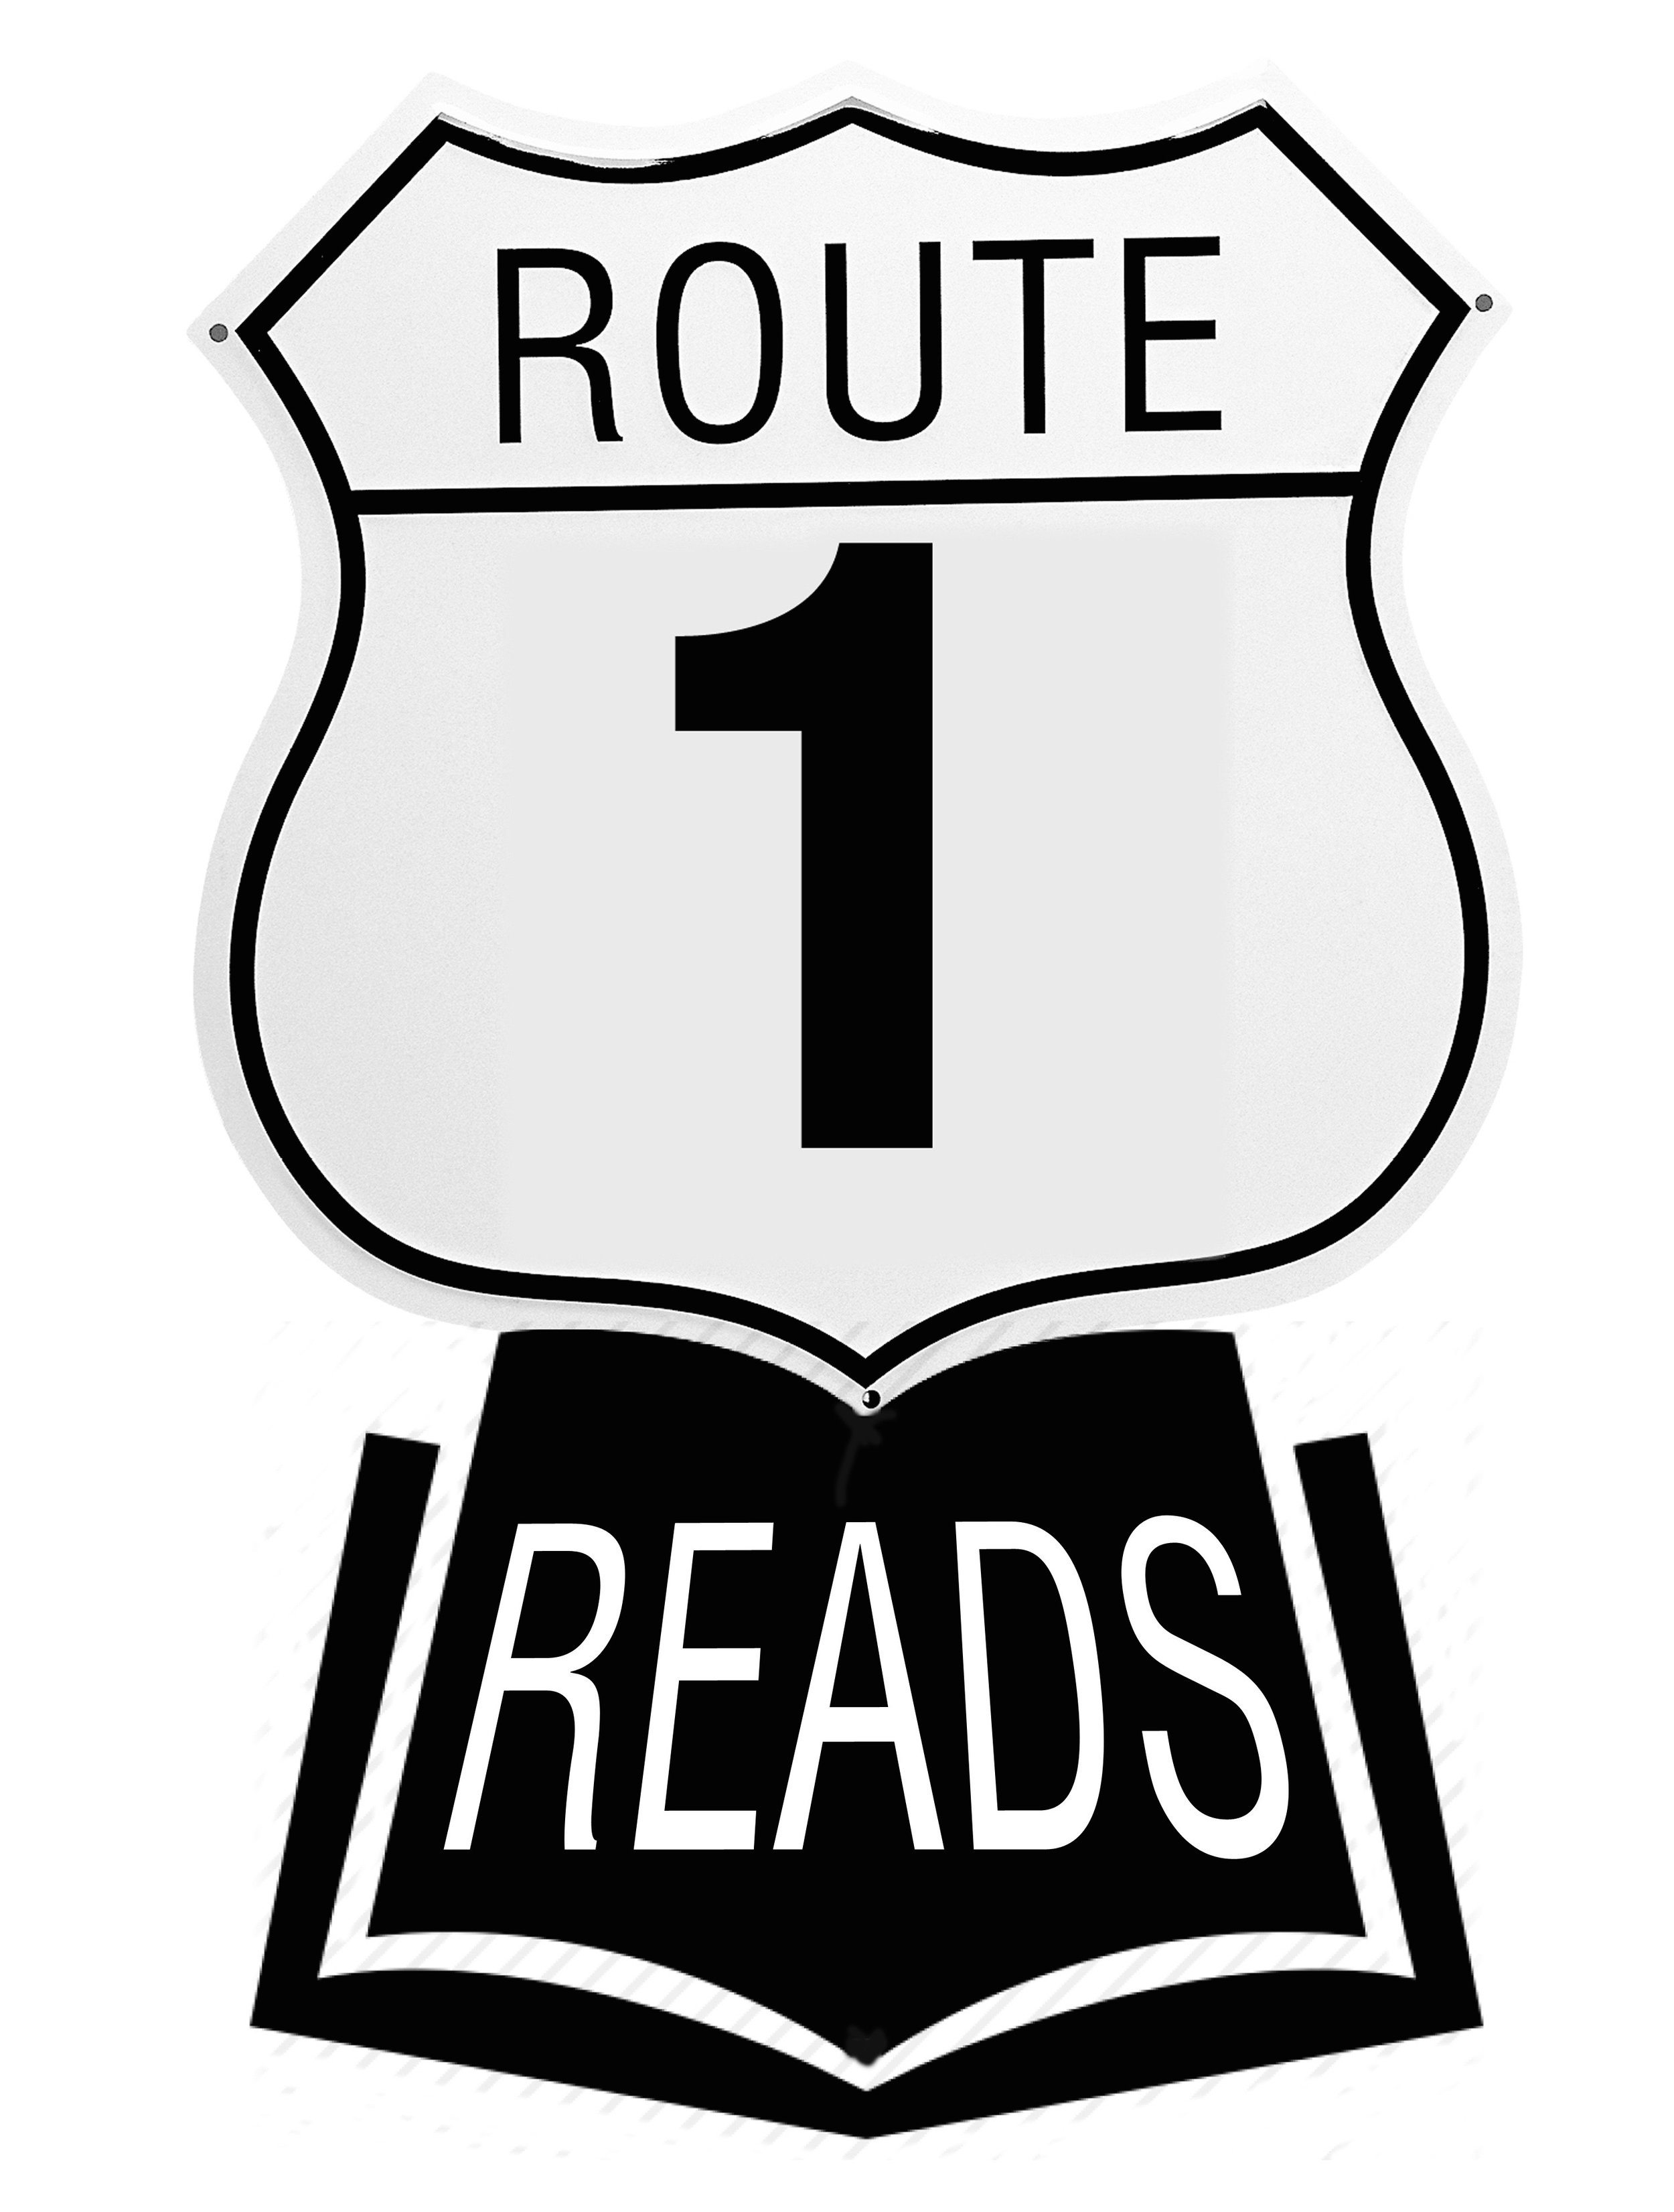 Rt 1 logo 1 8.1.16 reads.jpg